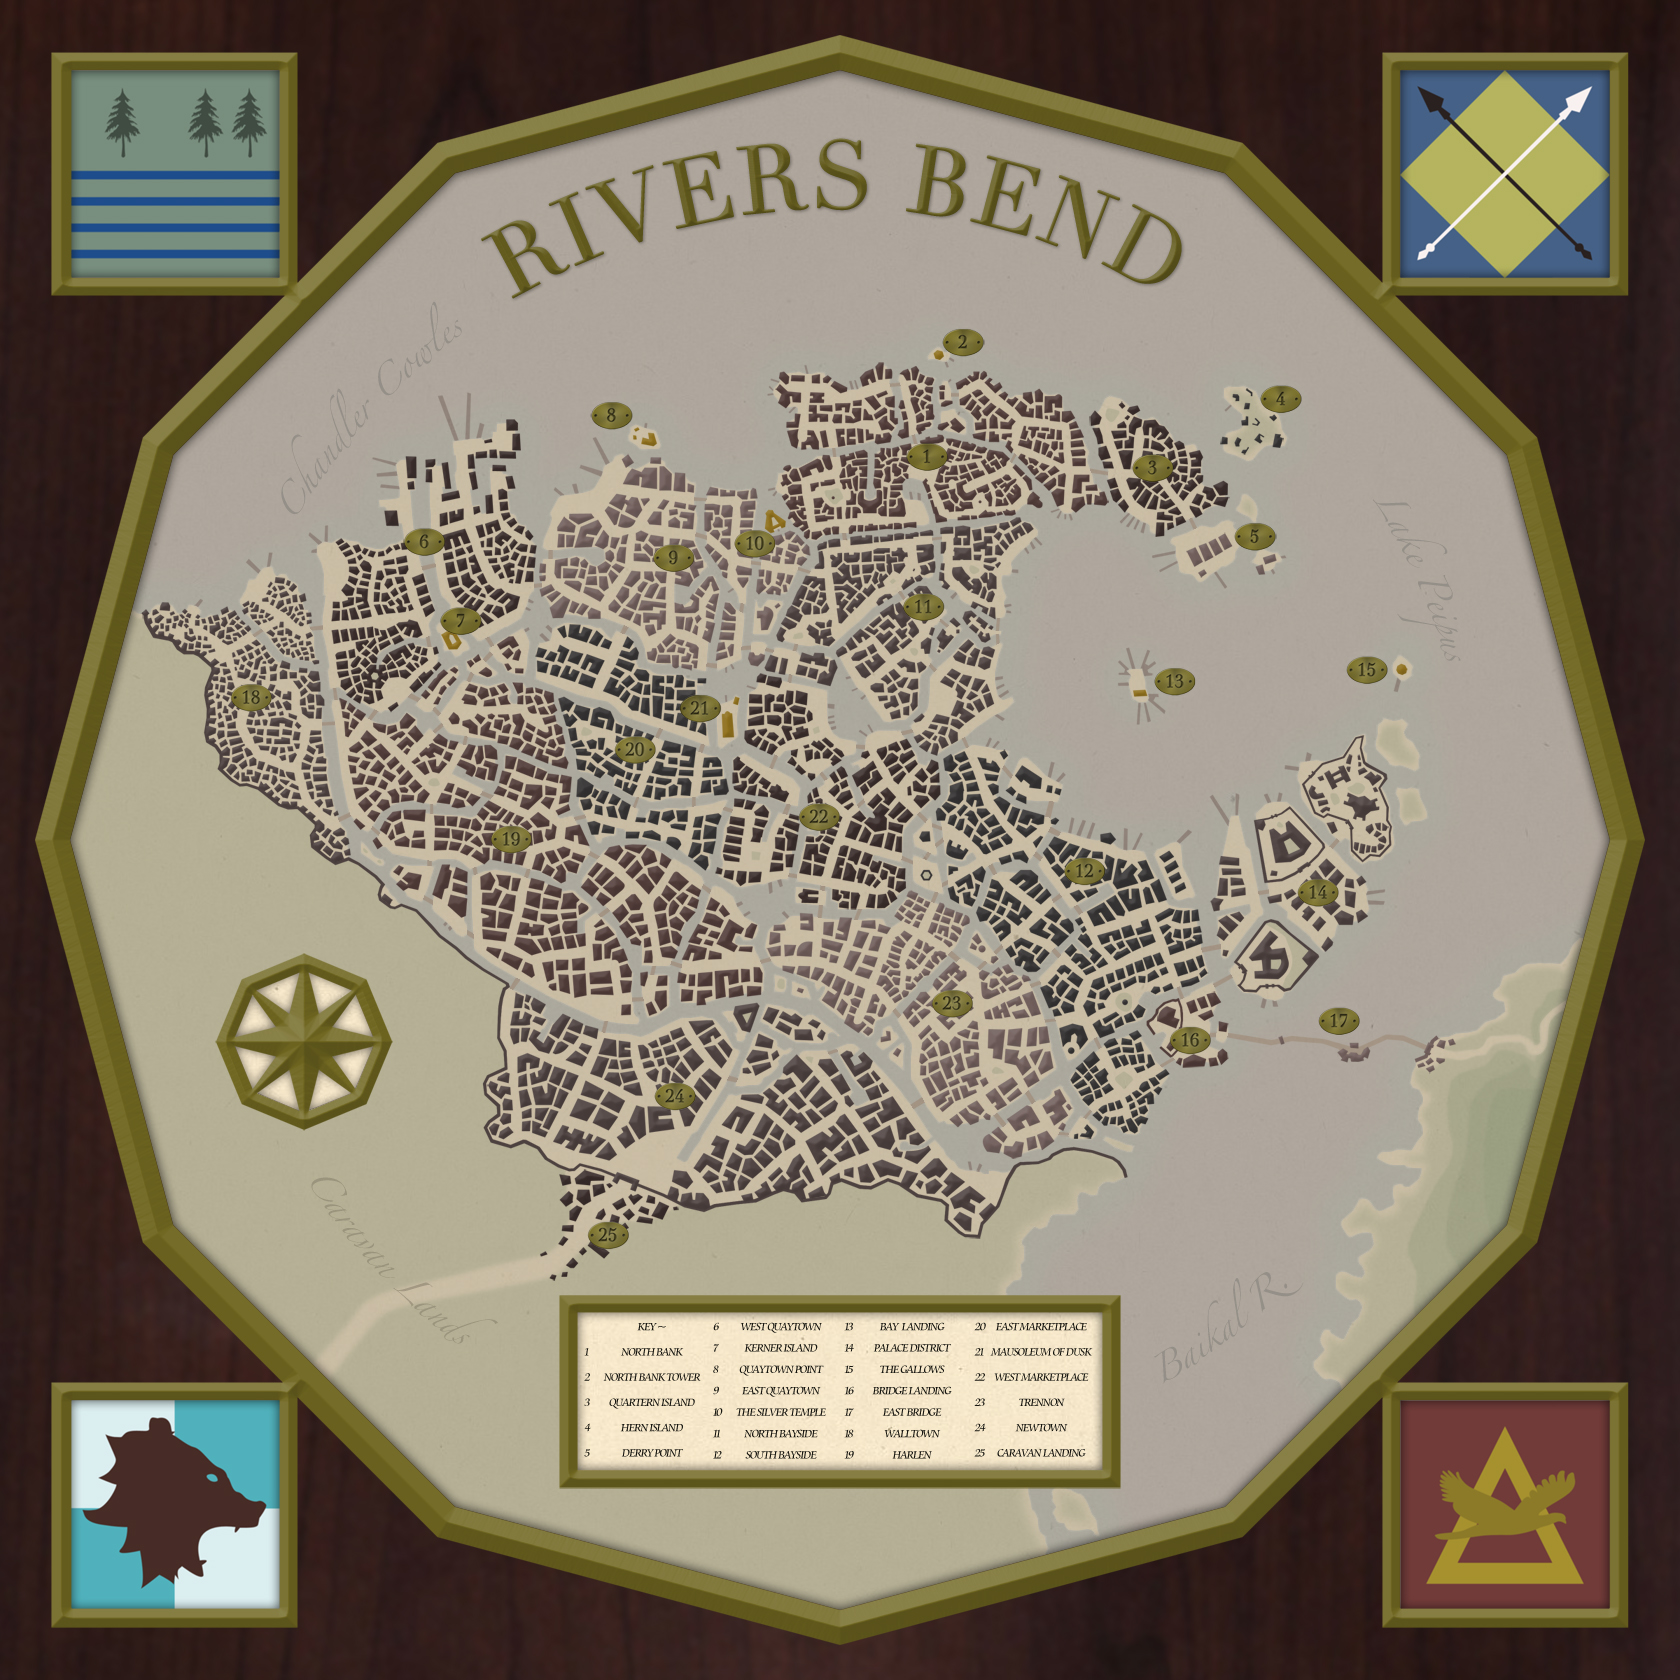 Rivers Bend - City Overview